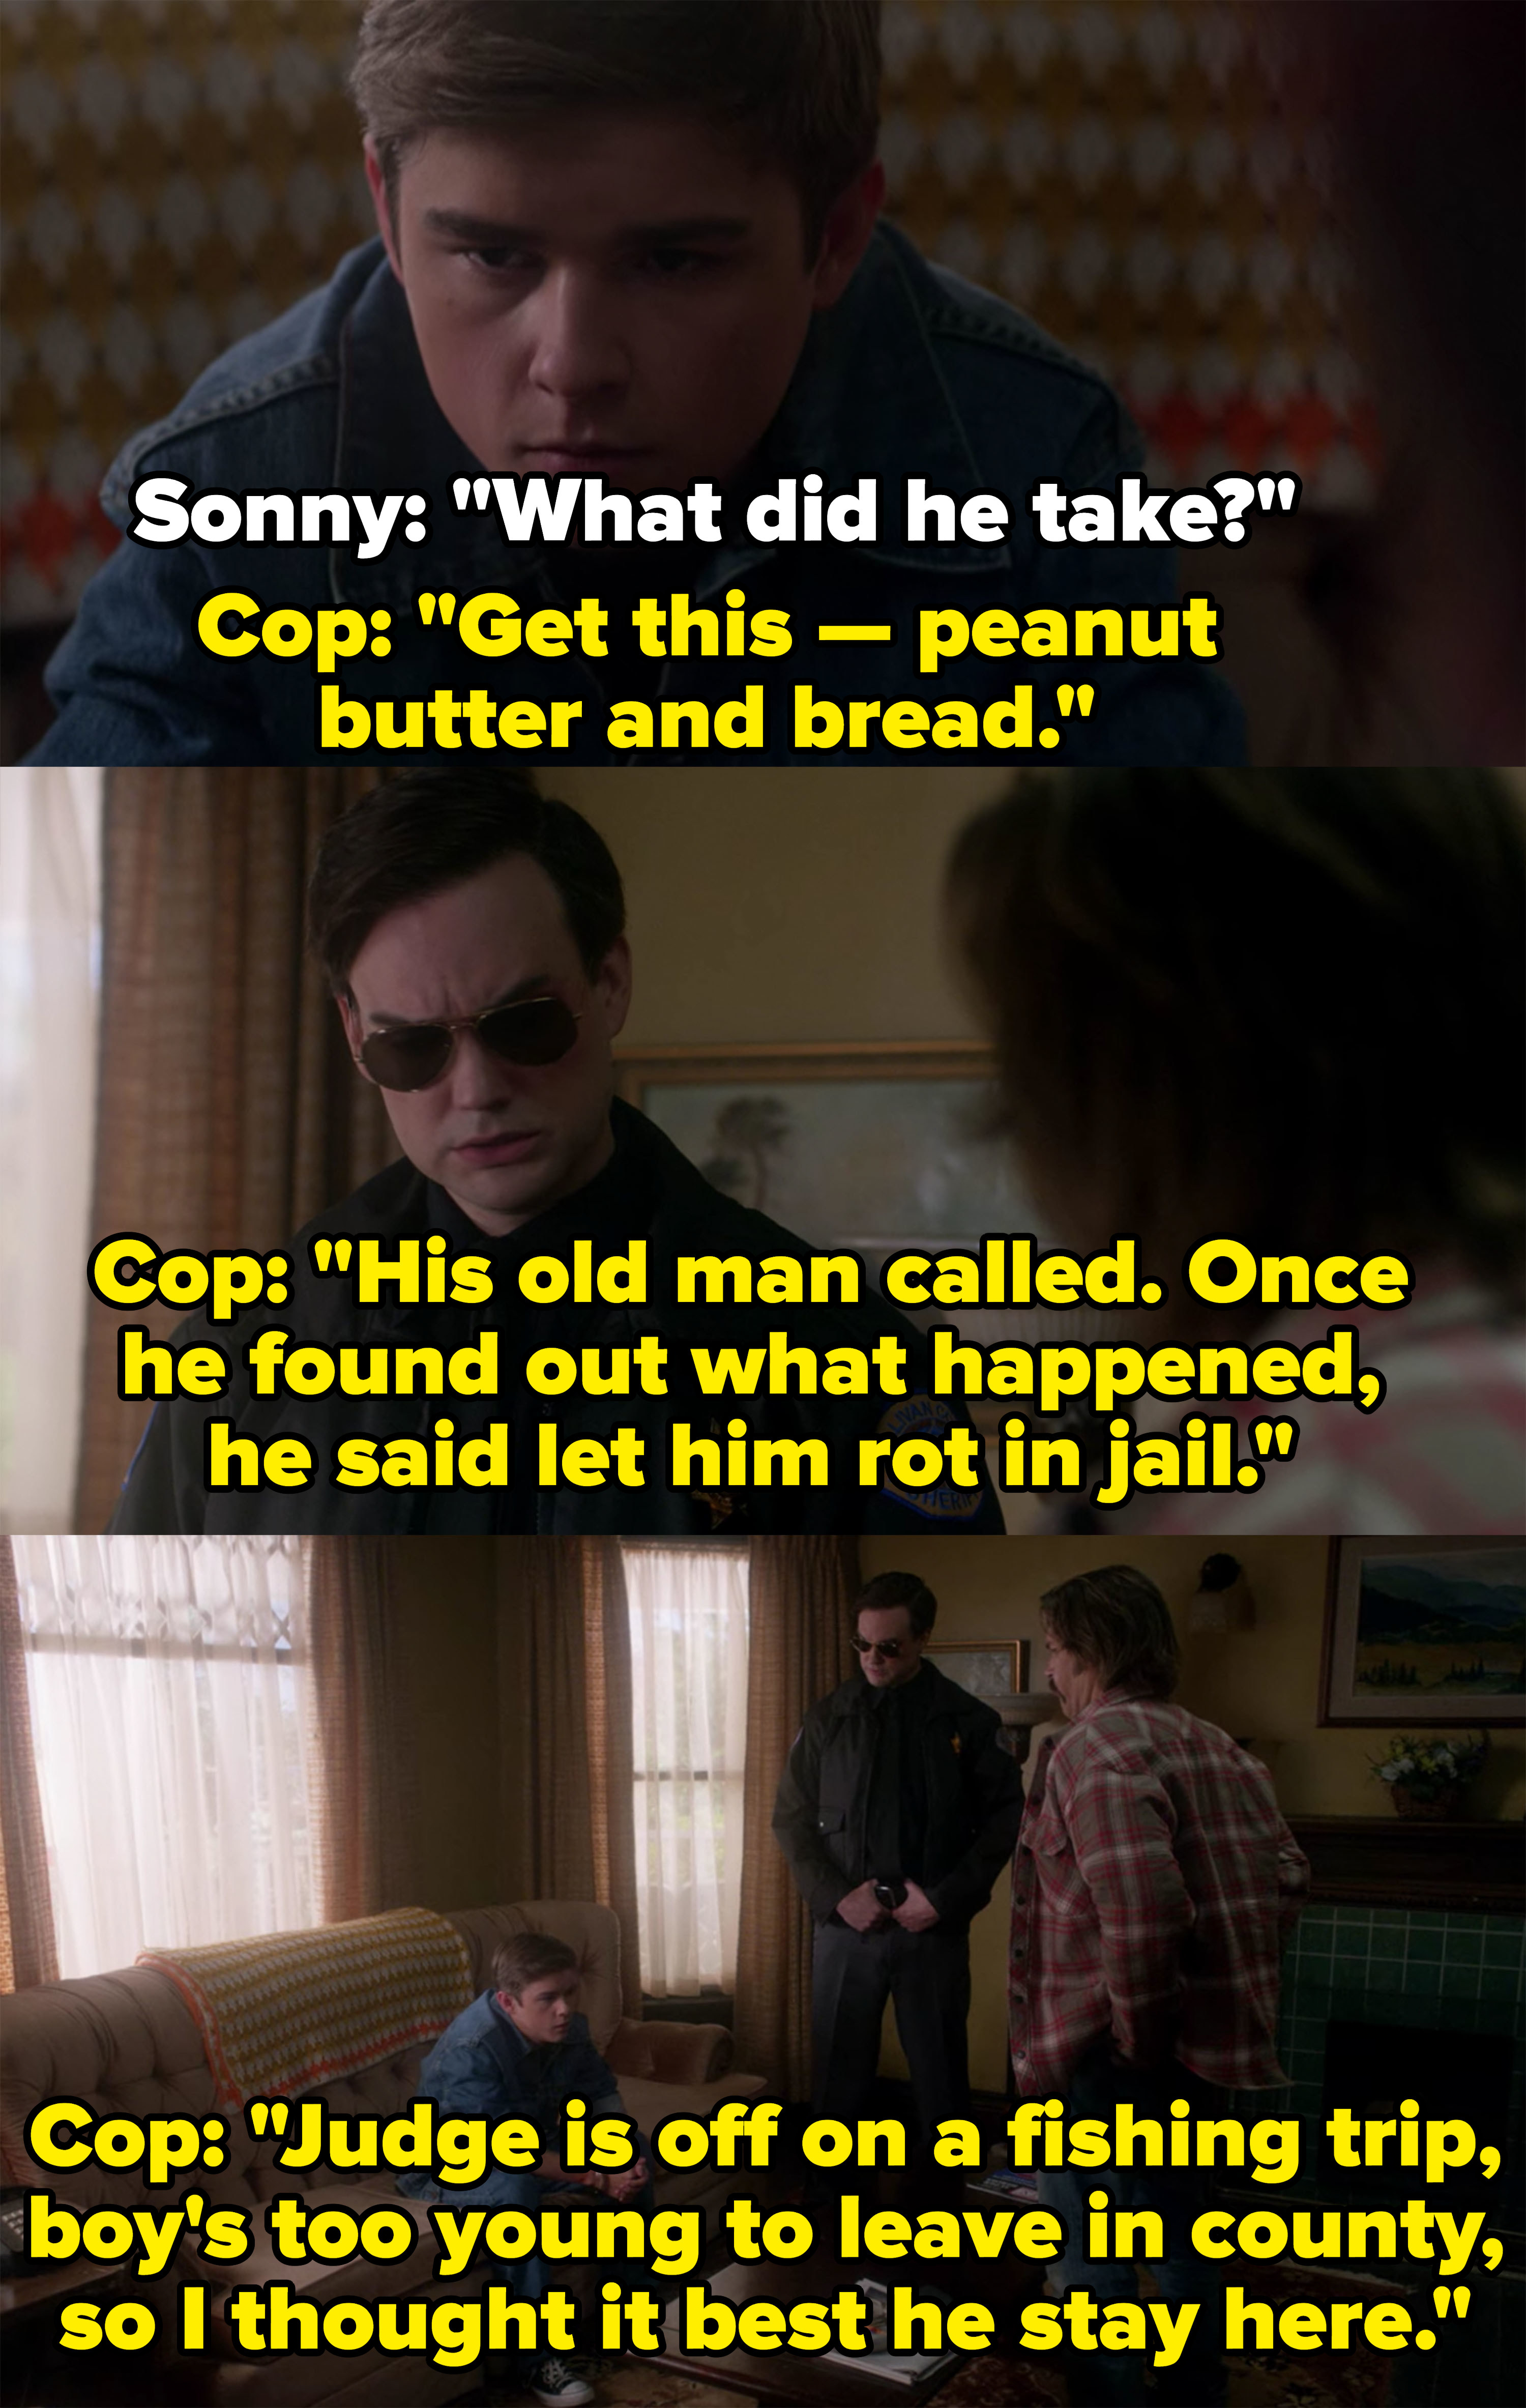 Cop brings young Dean to Sunny's boy home after he arrests him for stealing peanut butter and bread